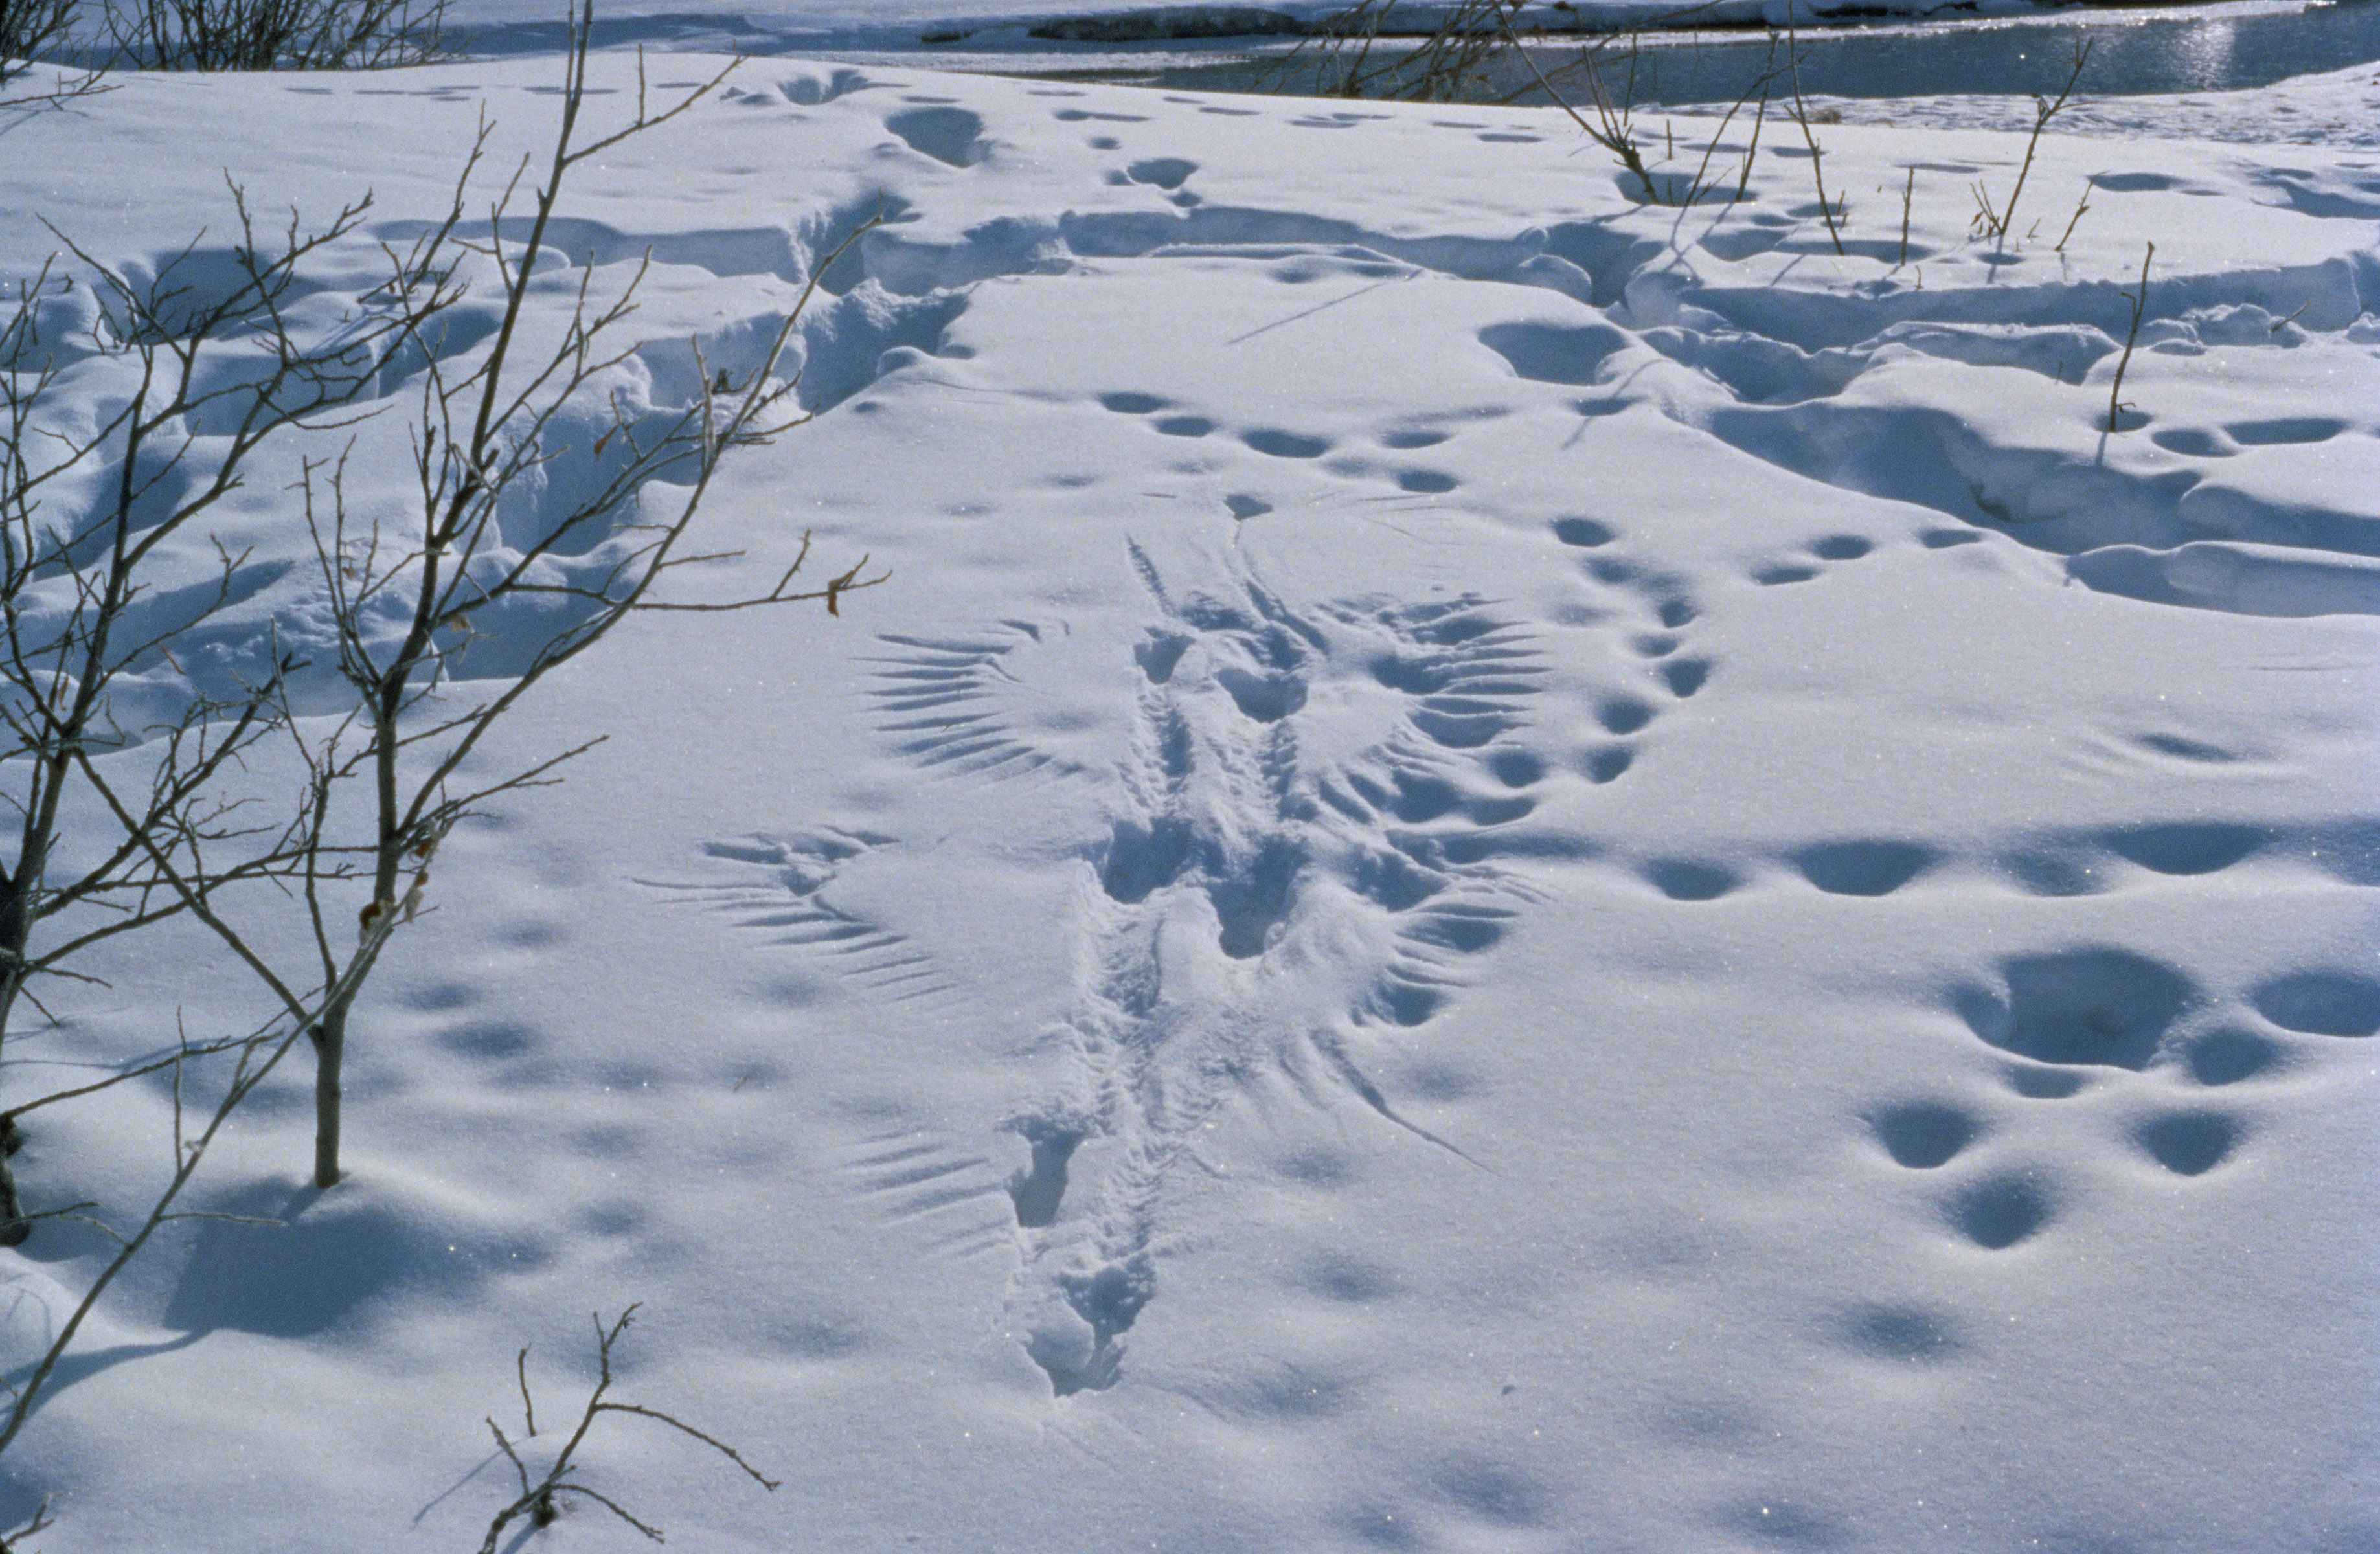 Quiz: Can You Guess the Animals That Made These Snow Tracks?